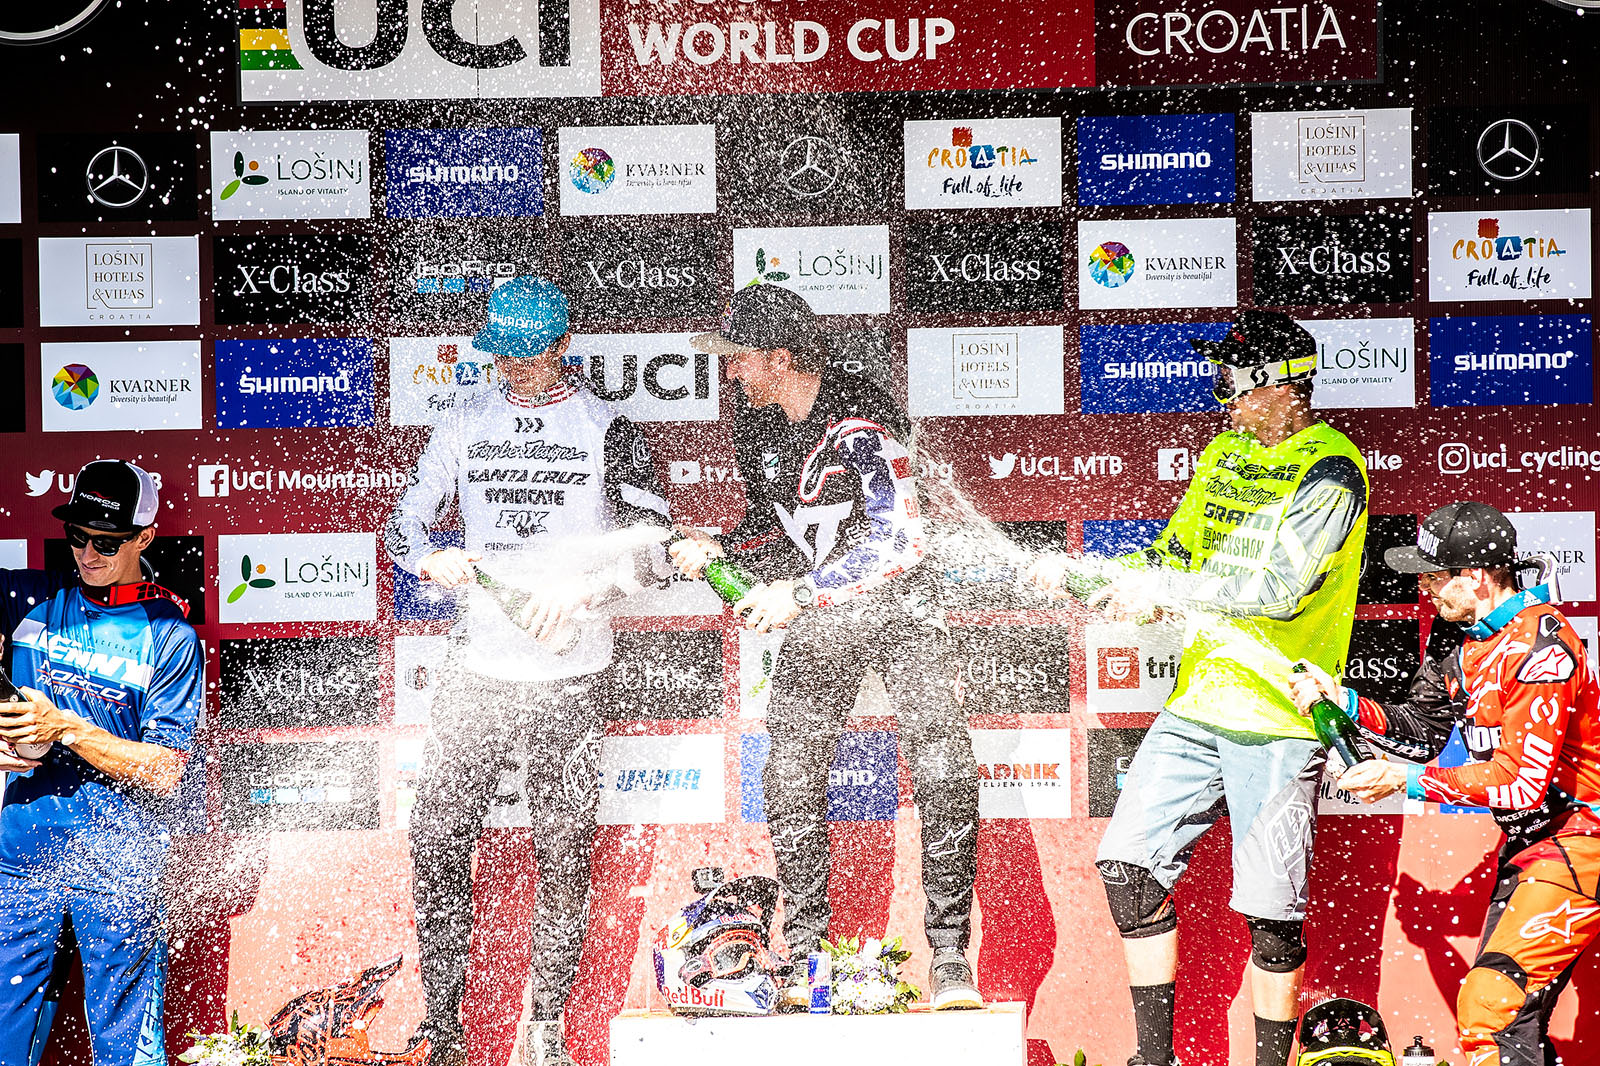 Santa Cruz Bicycles - Luca Shaw Getting Sprayed with Champagne on the Podium at the Losinj World Cup DH